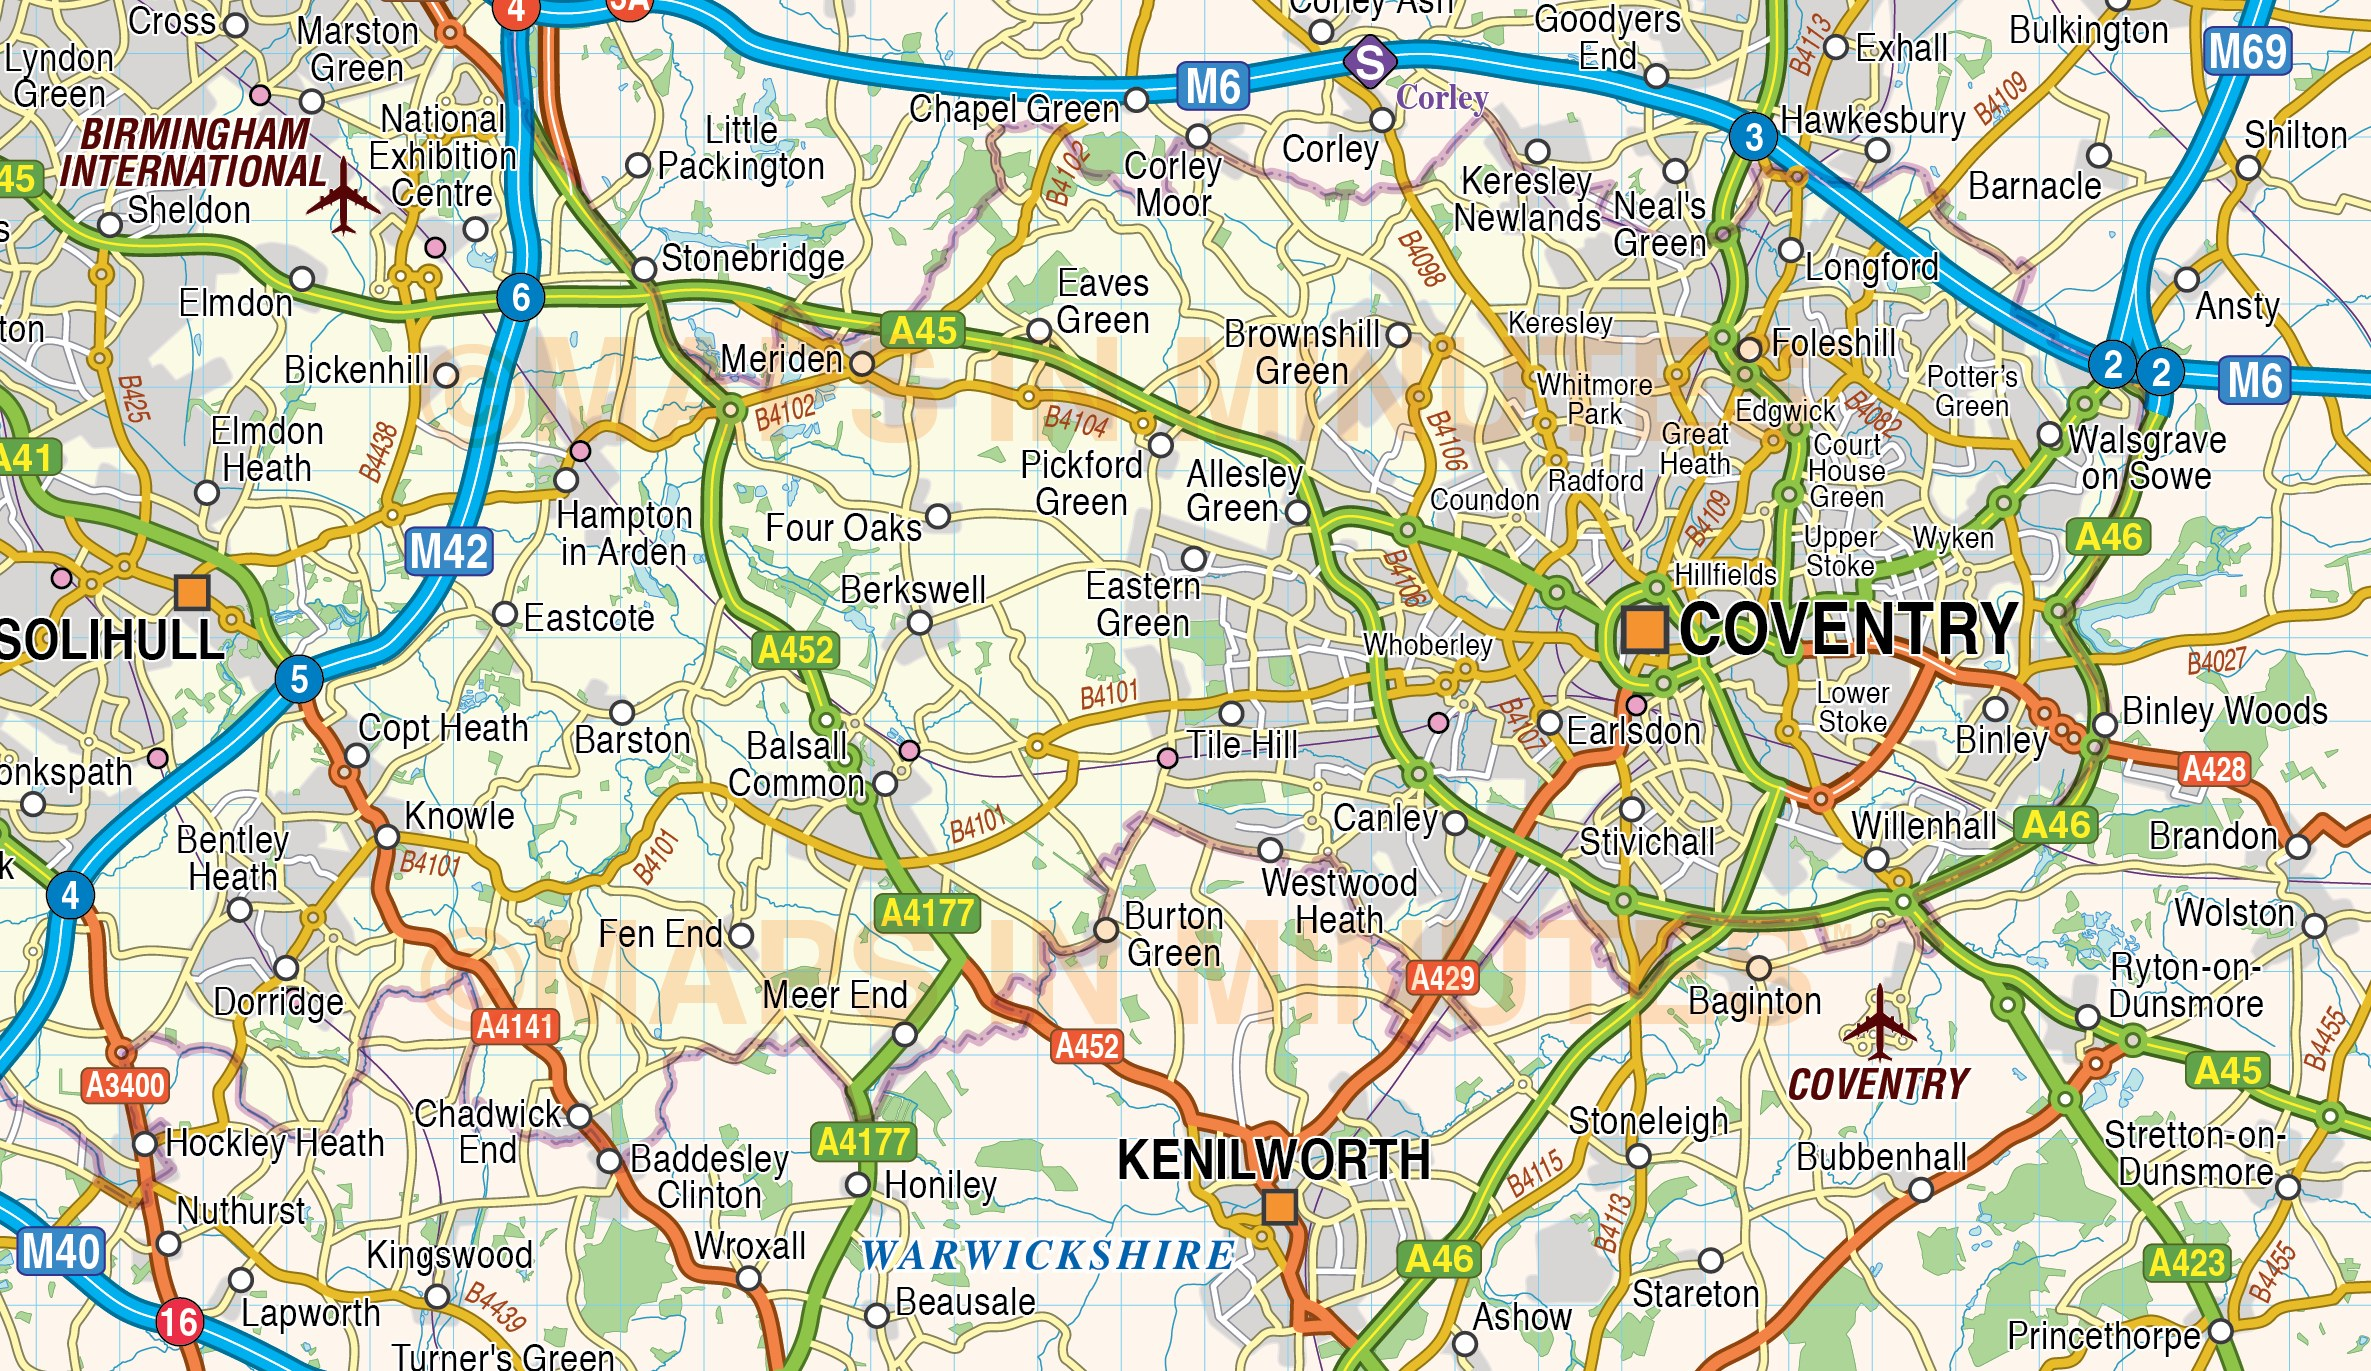 Map Of Coventry Digital vector map of Greater Birmingham Coventry @250k scale in  Map Of Coventry